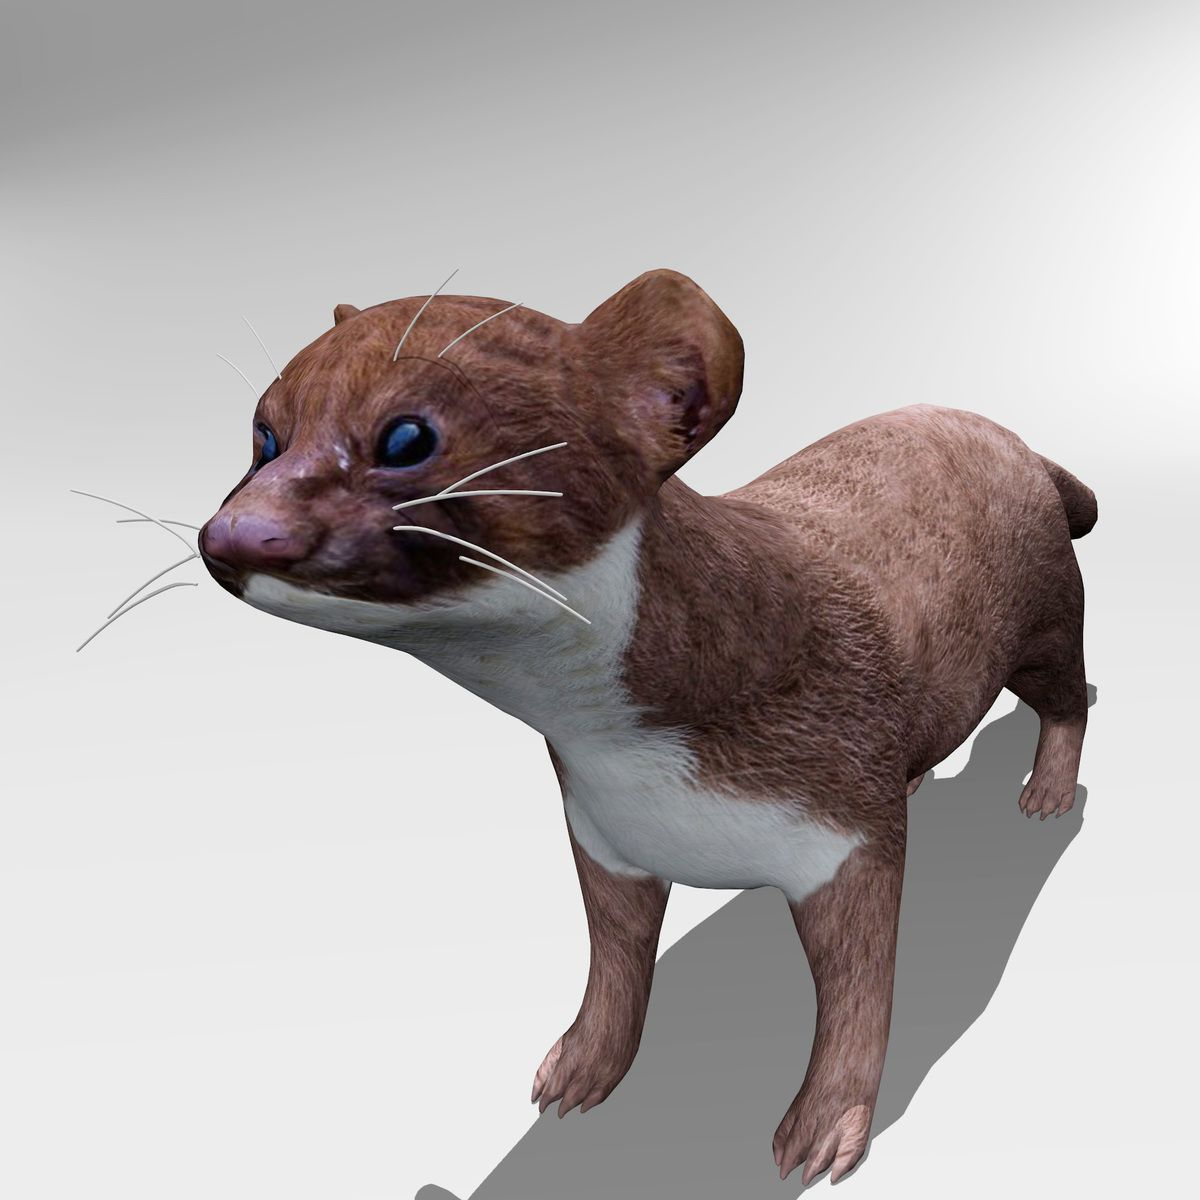 Weasel. This royalty free 3D model or texture is available